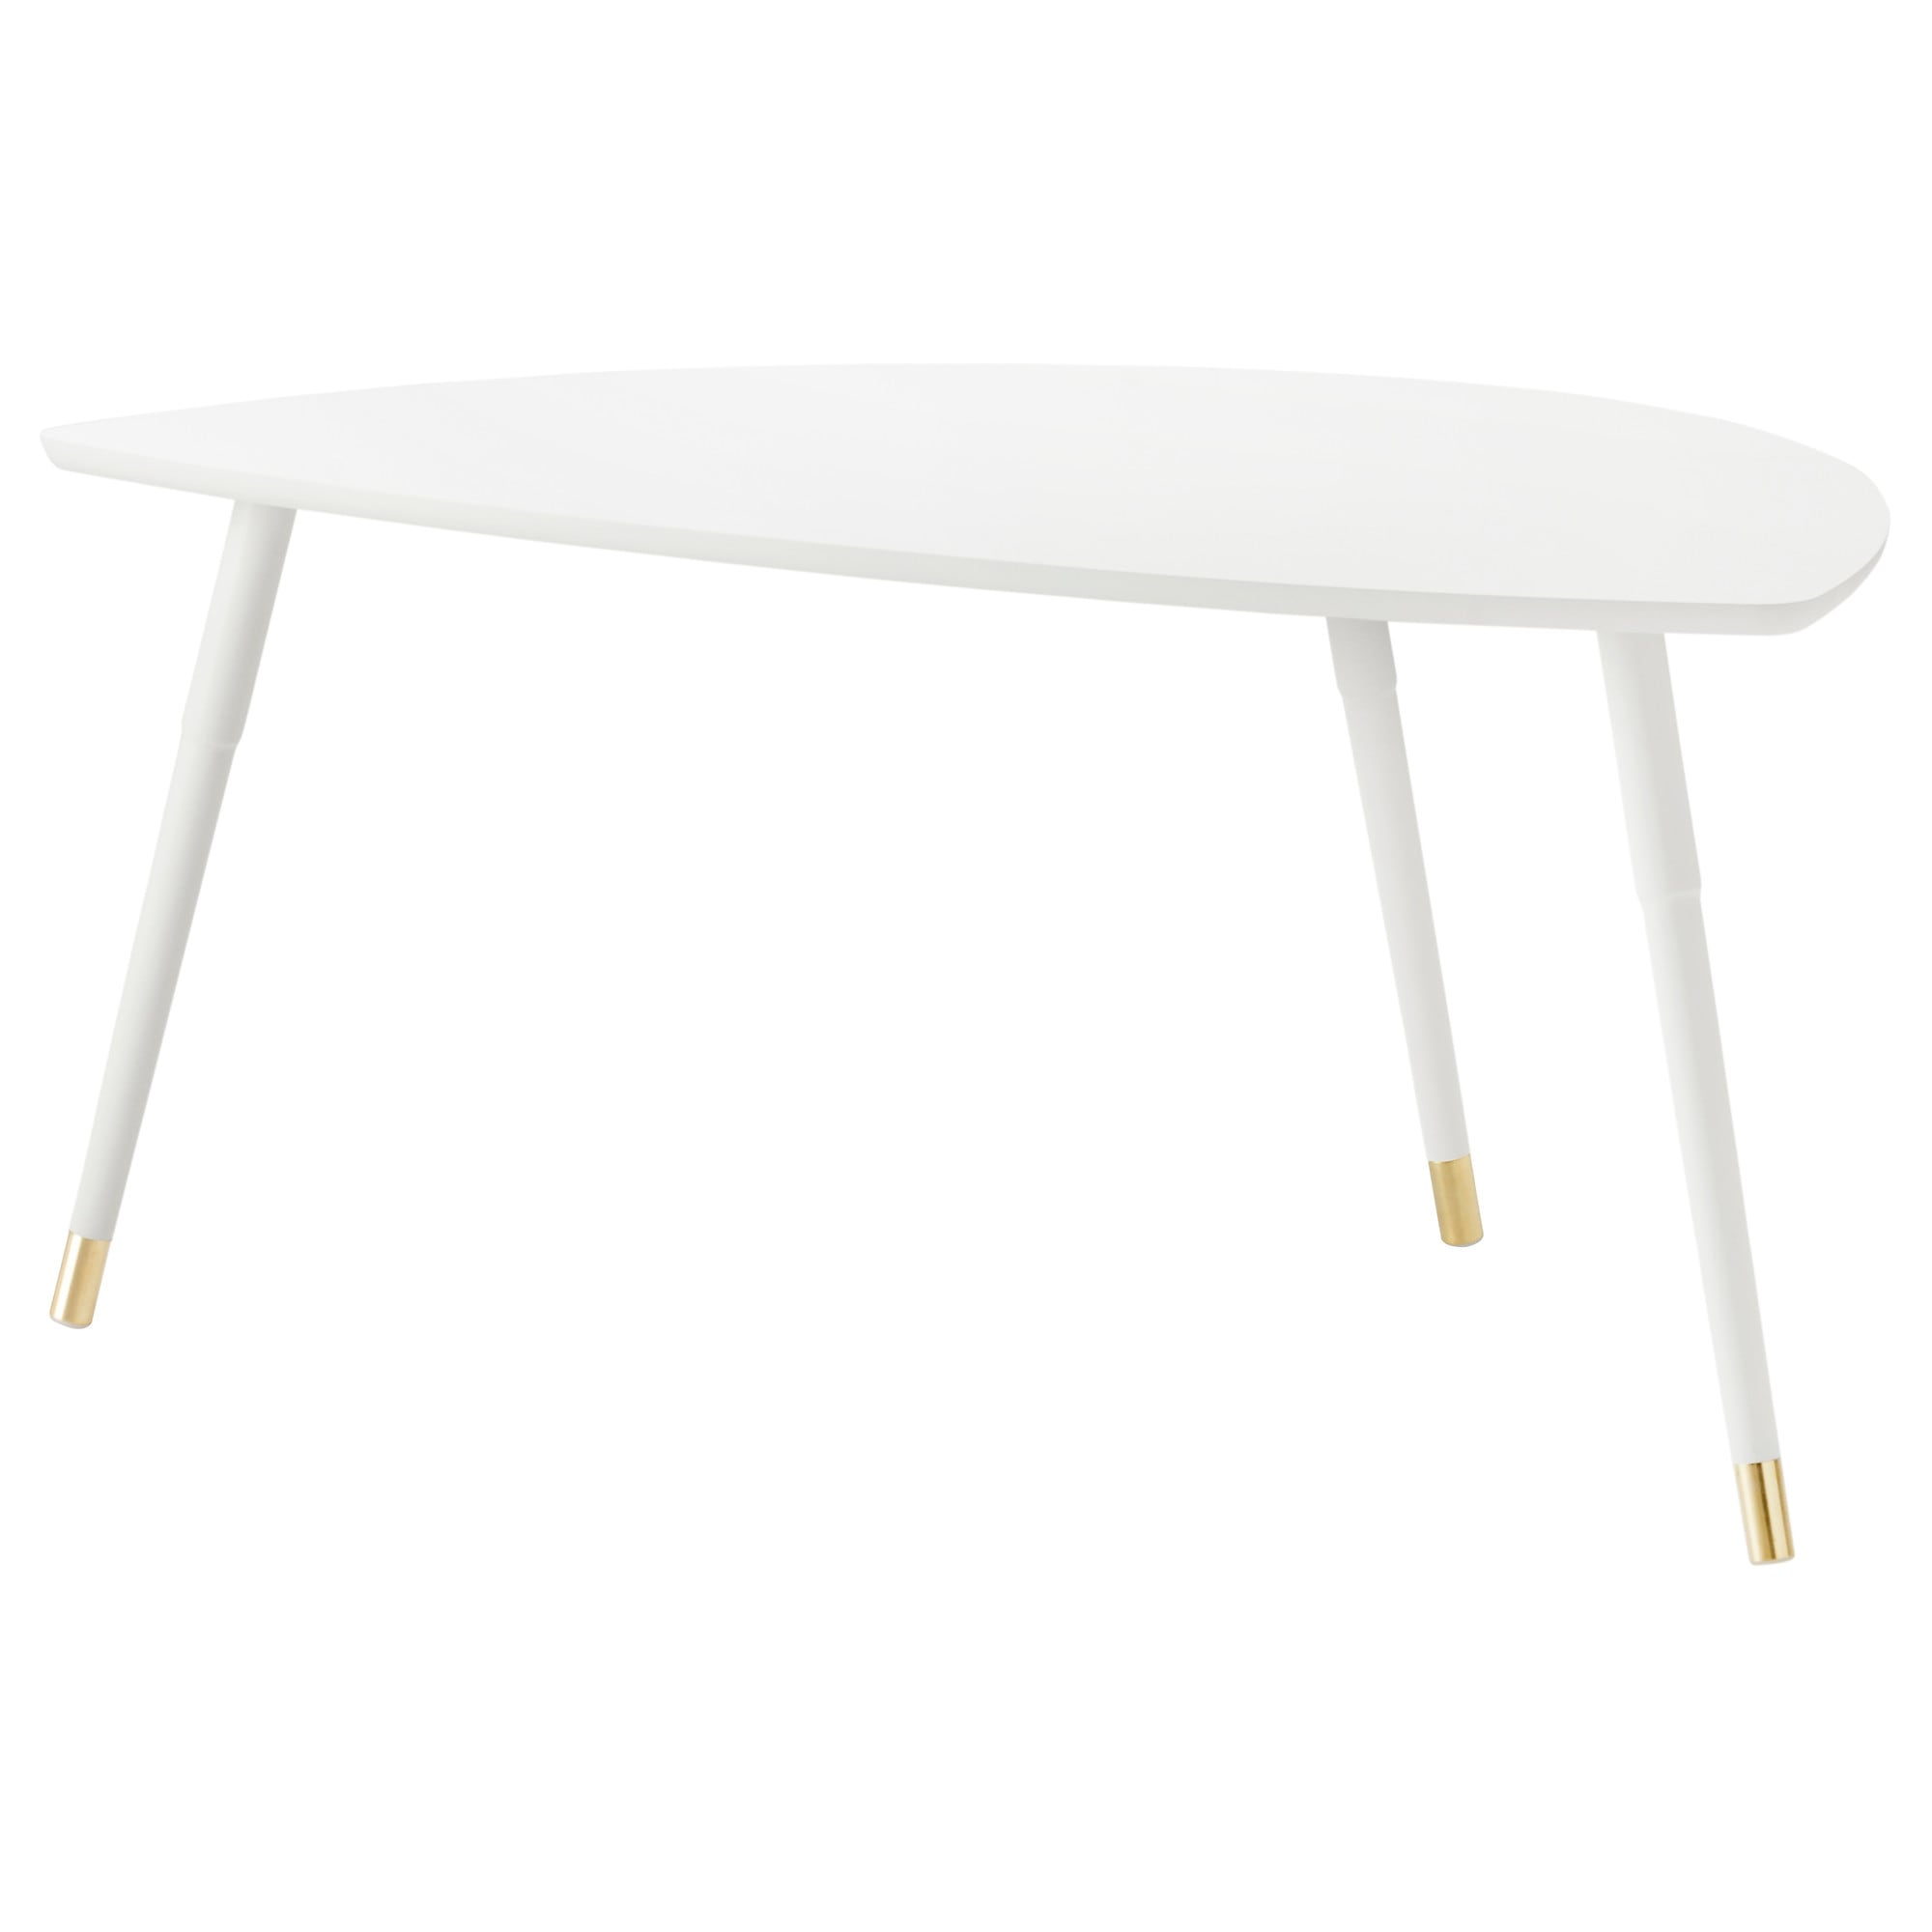 Table basse avec meuble ikea sammlung von for Ikea table basse relevable